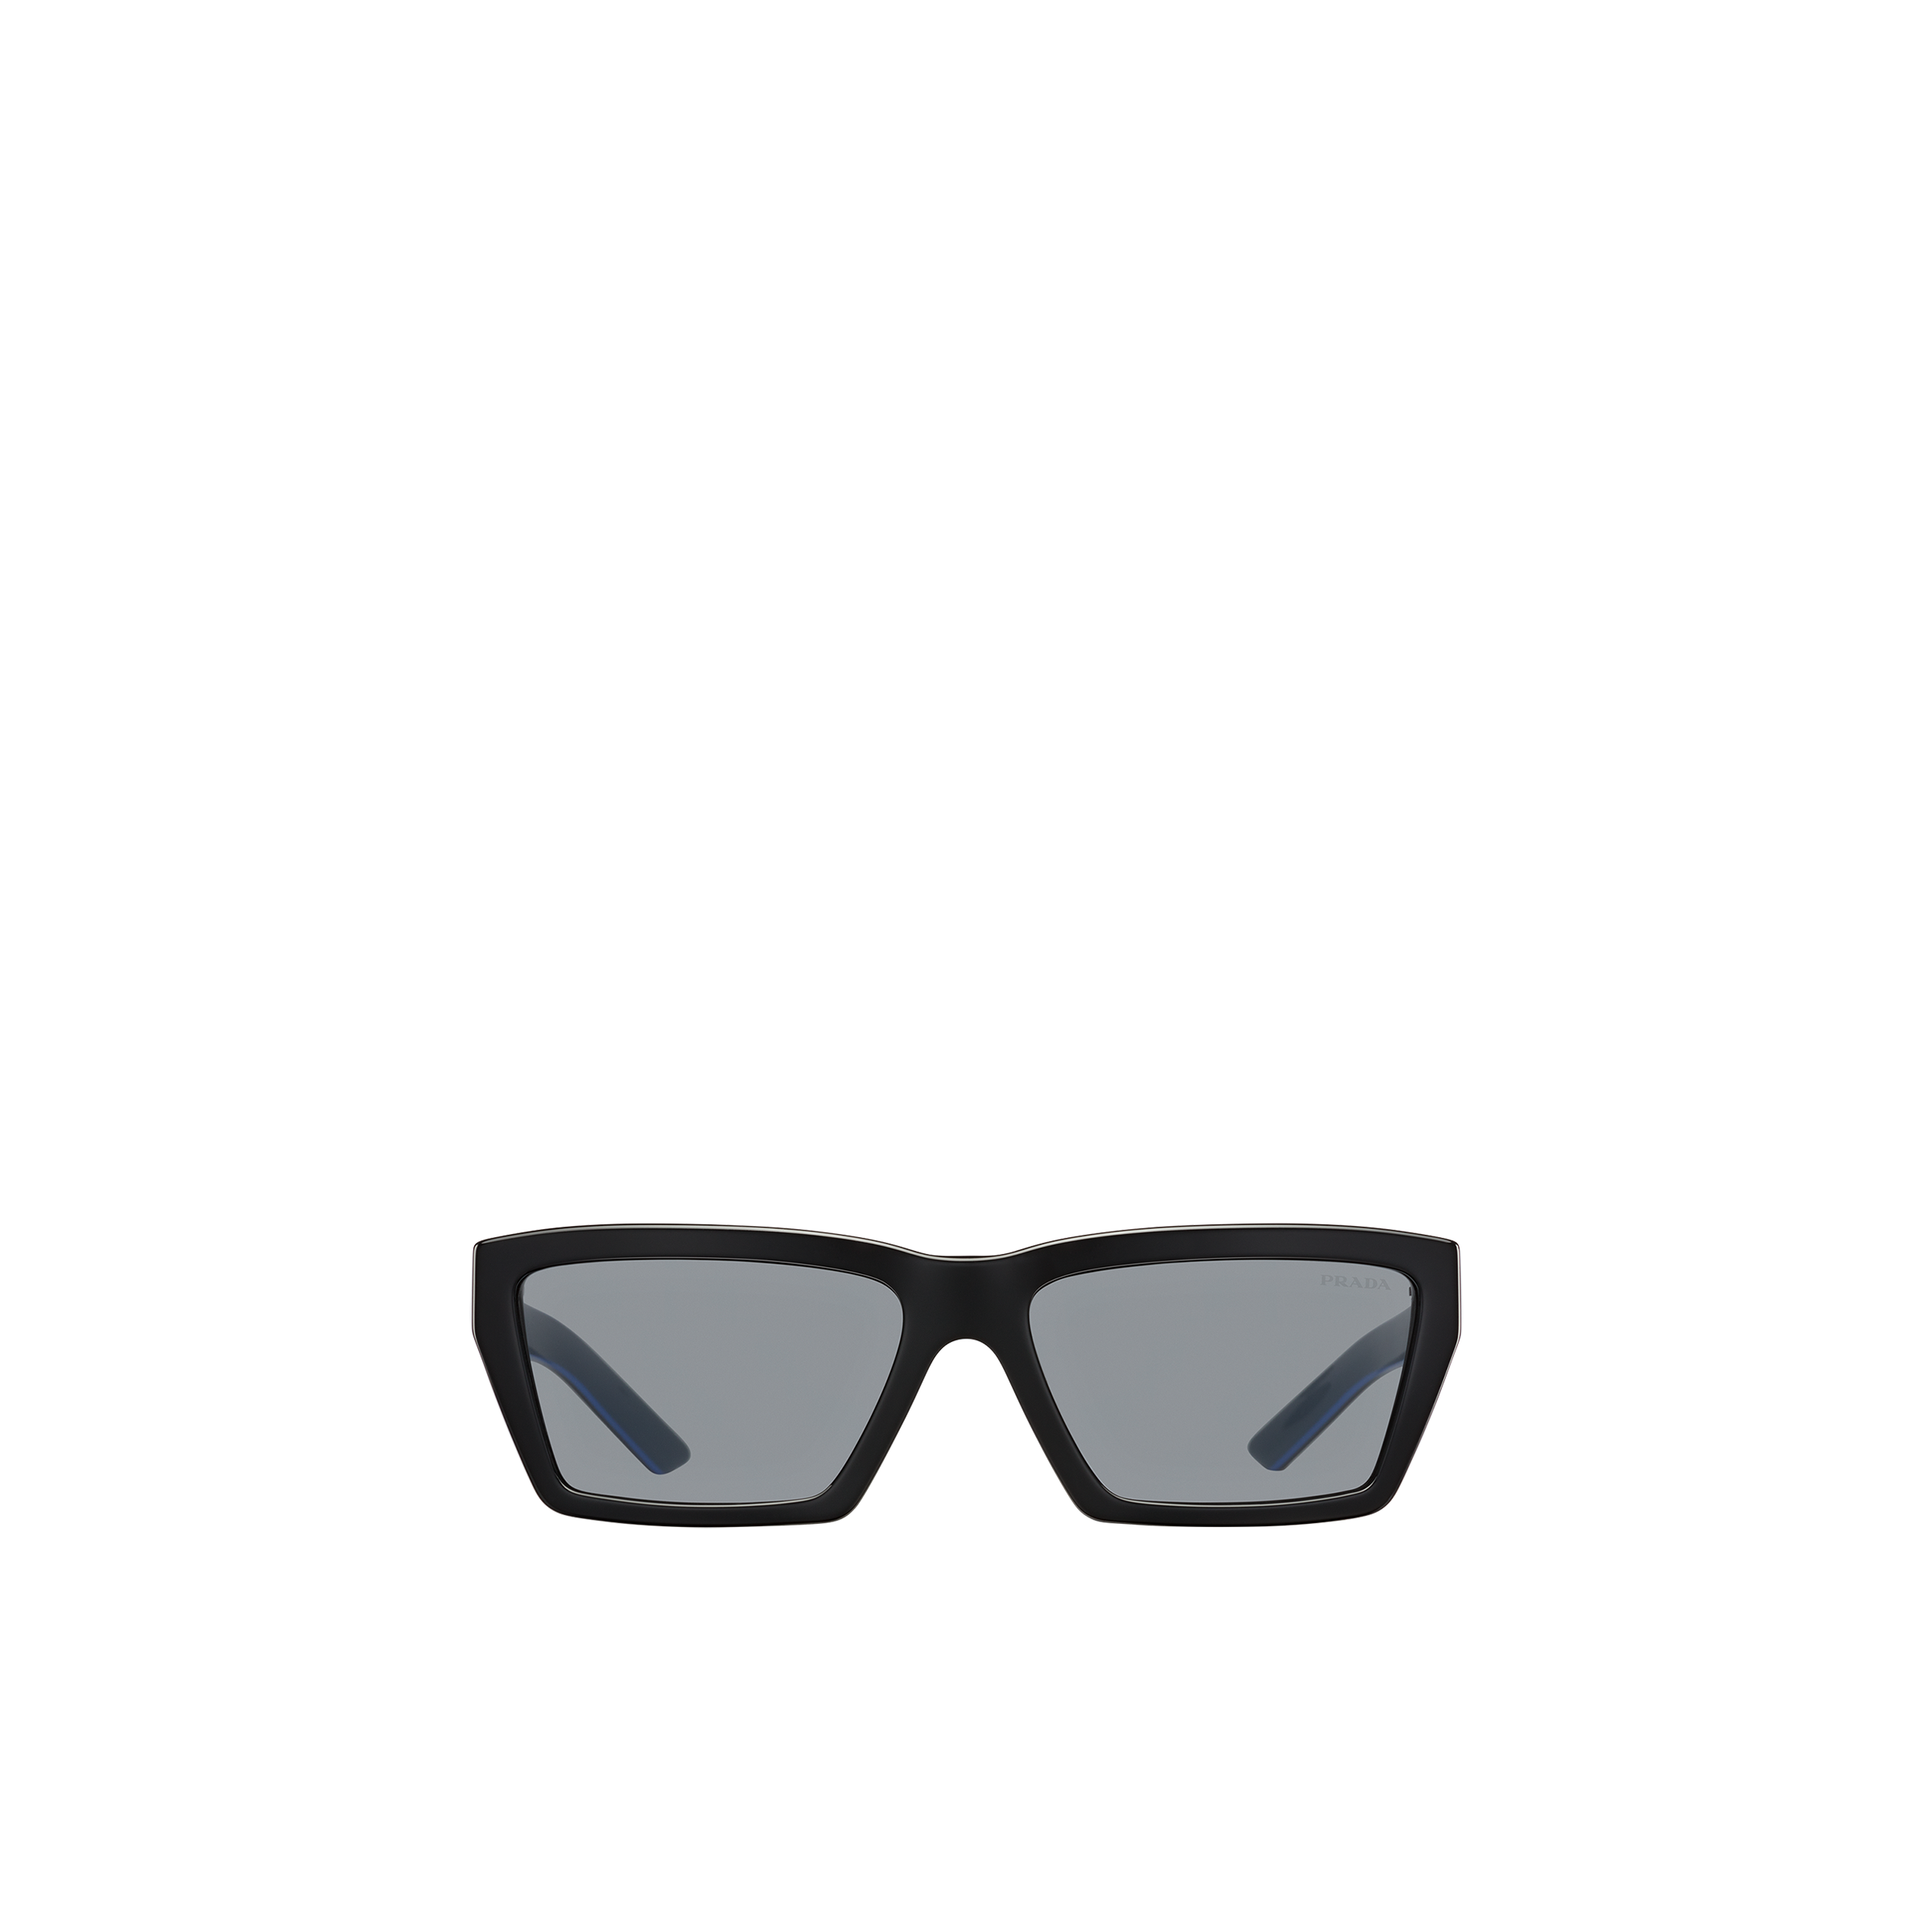 4c5cb671 Prada Disguise sunglasses